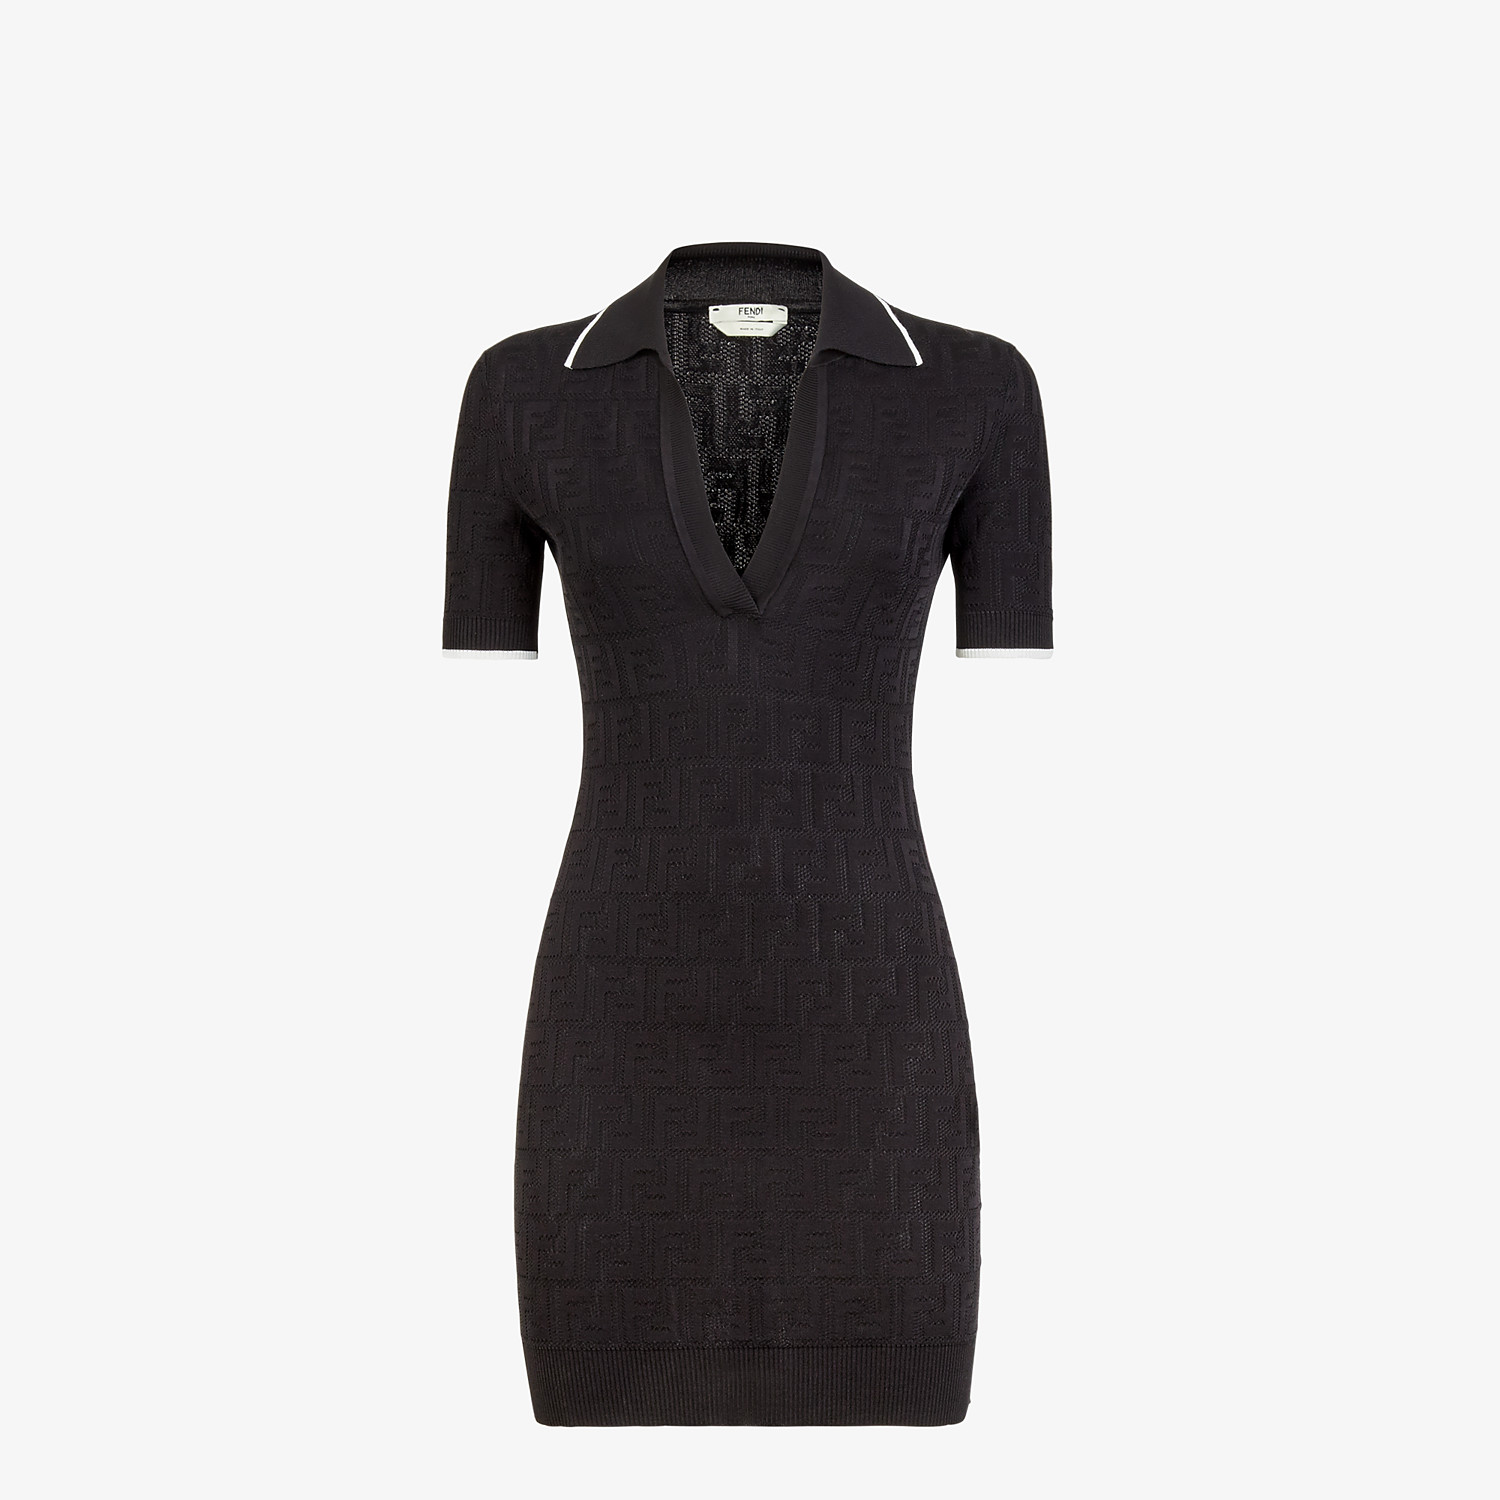 FENDI DRESS - Black viscose and cotton dress - view 1 detail